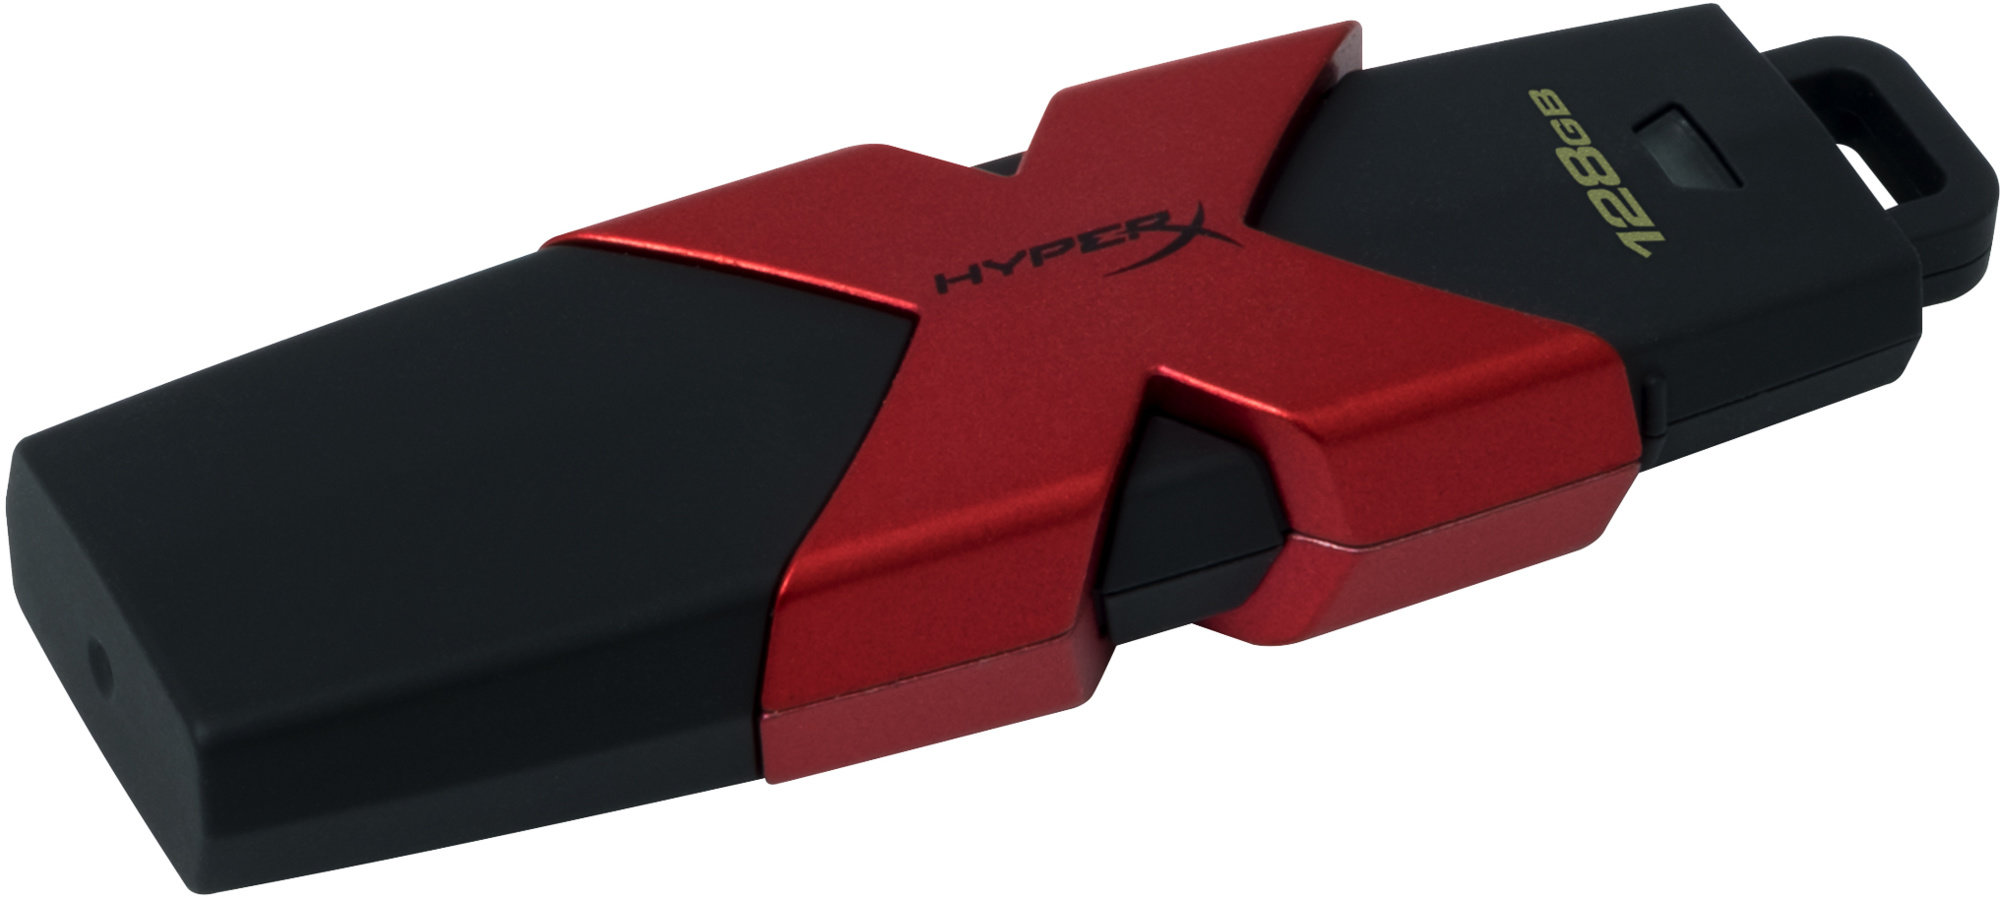 KINGSTON 128GB HyperX Savage USB 3.1/3.0 350MB/s R, 180MB/s W